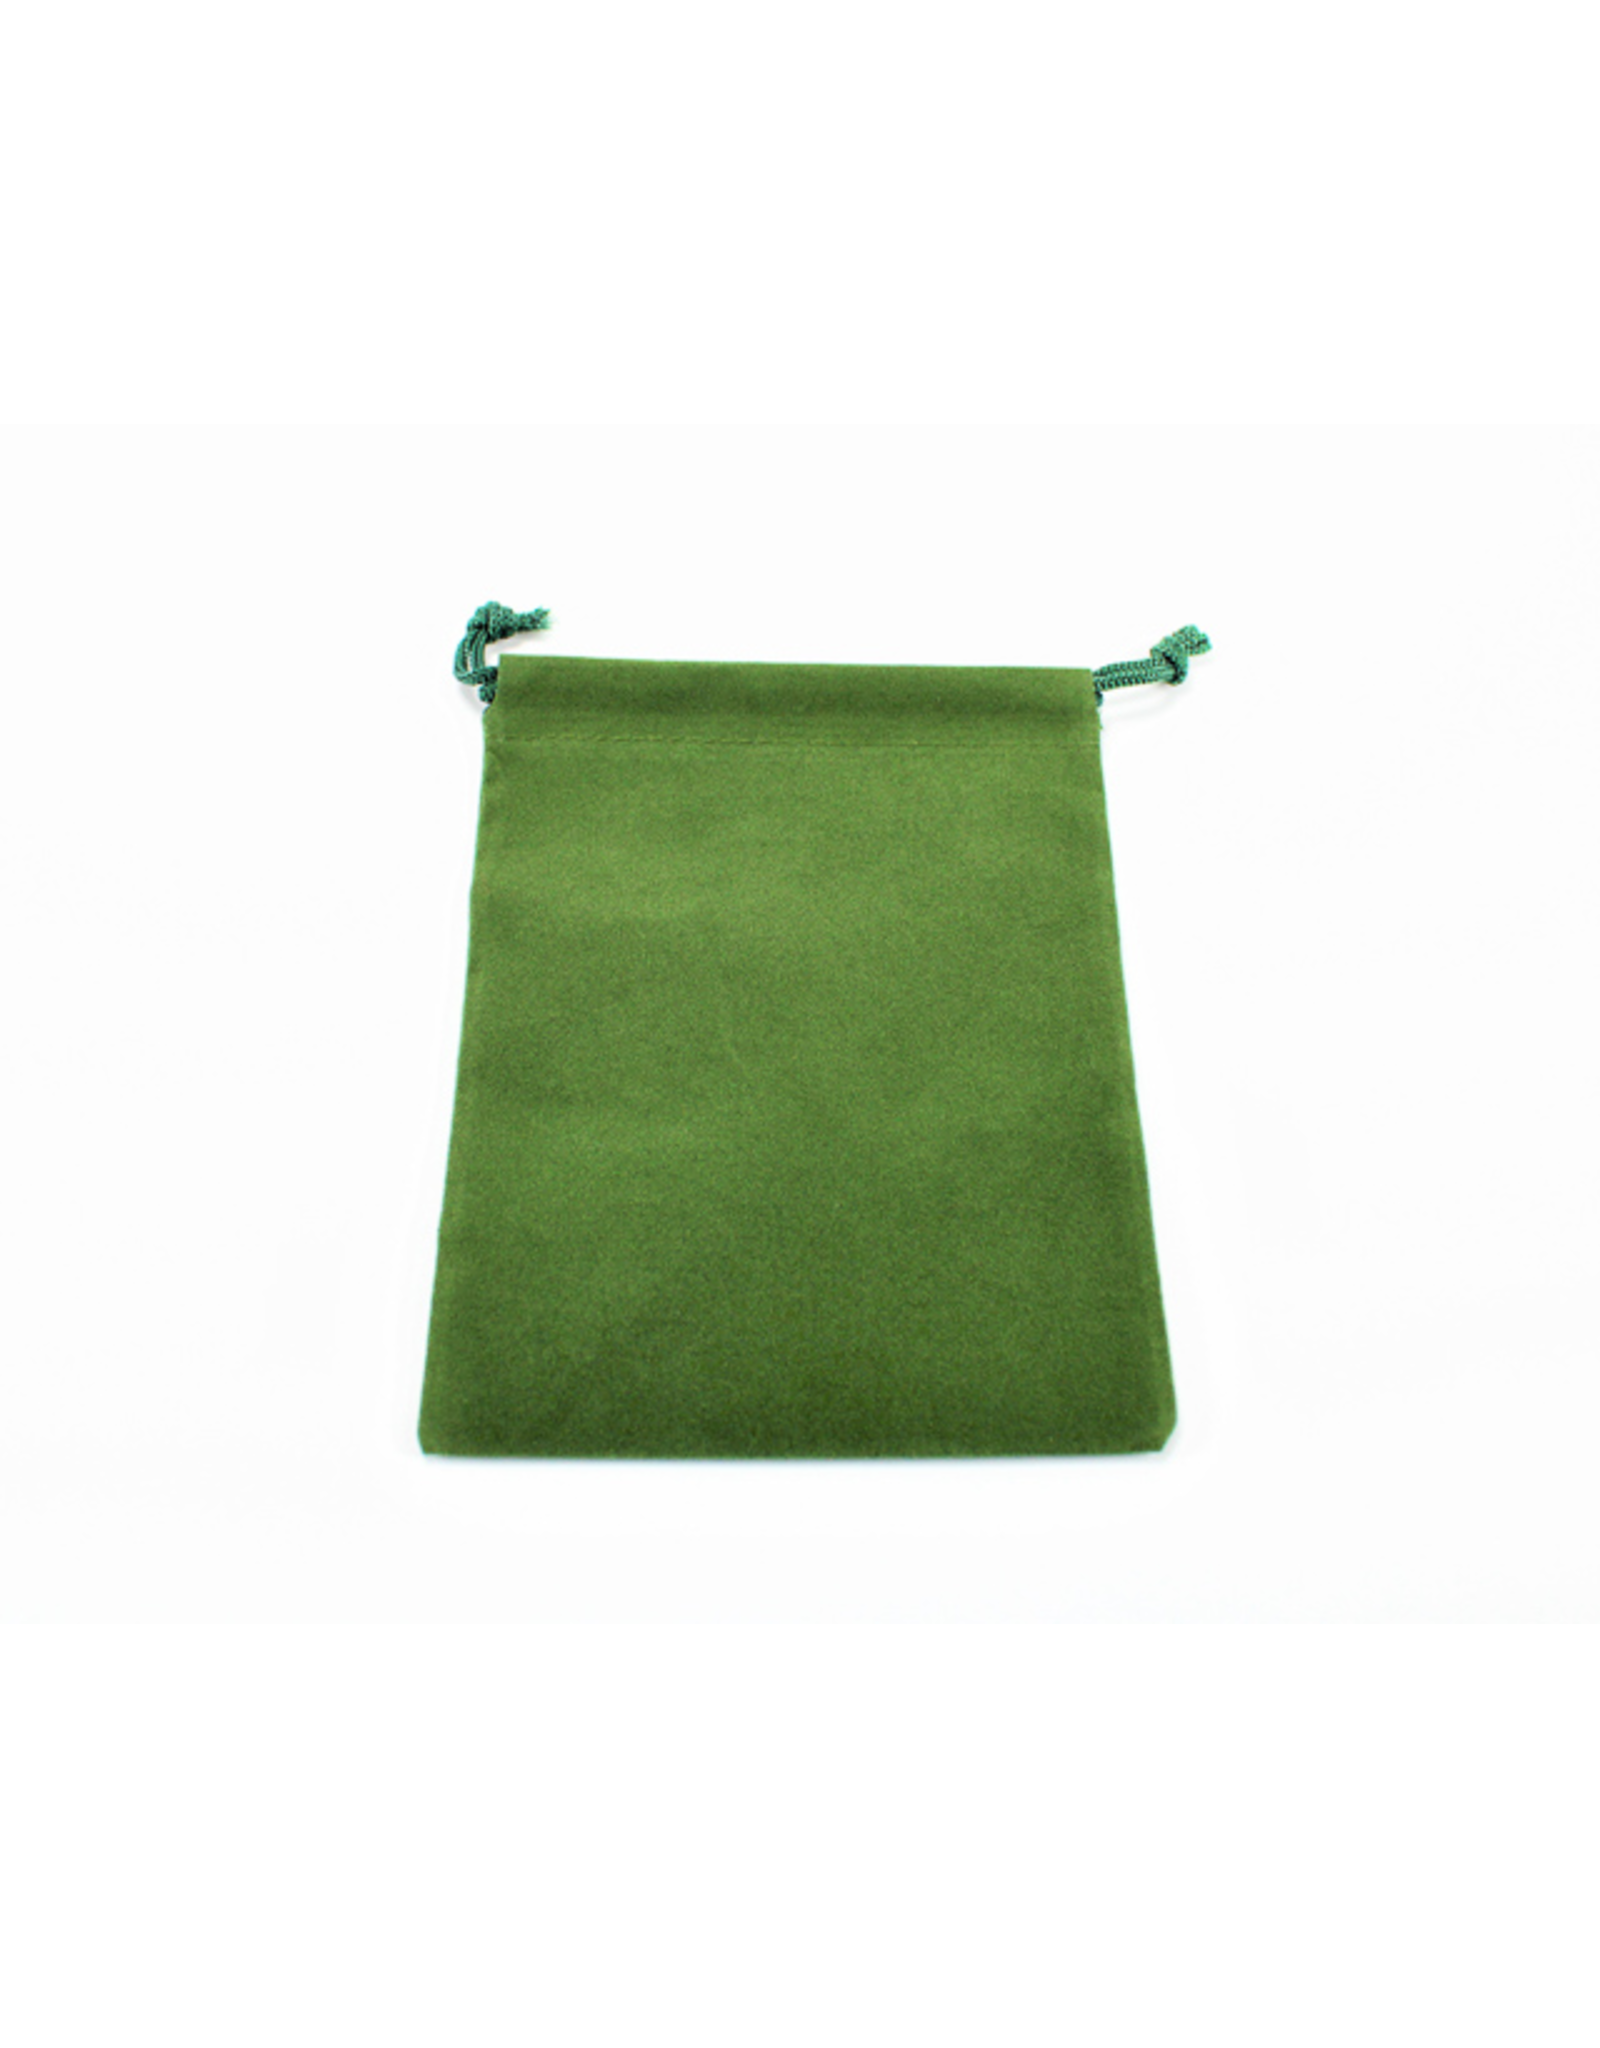 Chessex Dice Bag: Suede Green (Small)